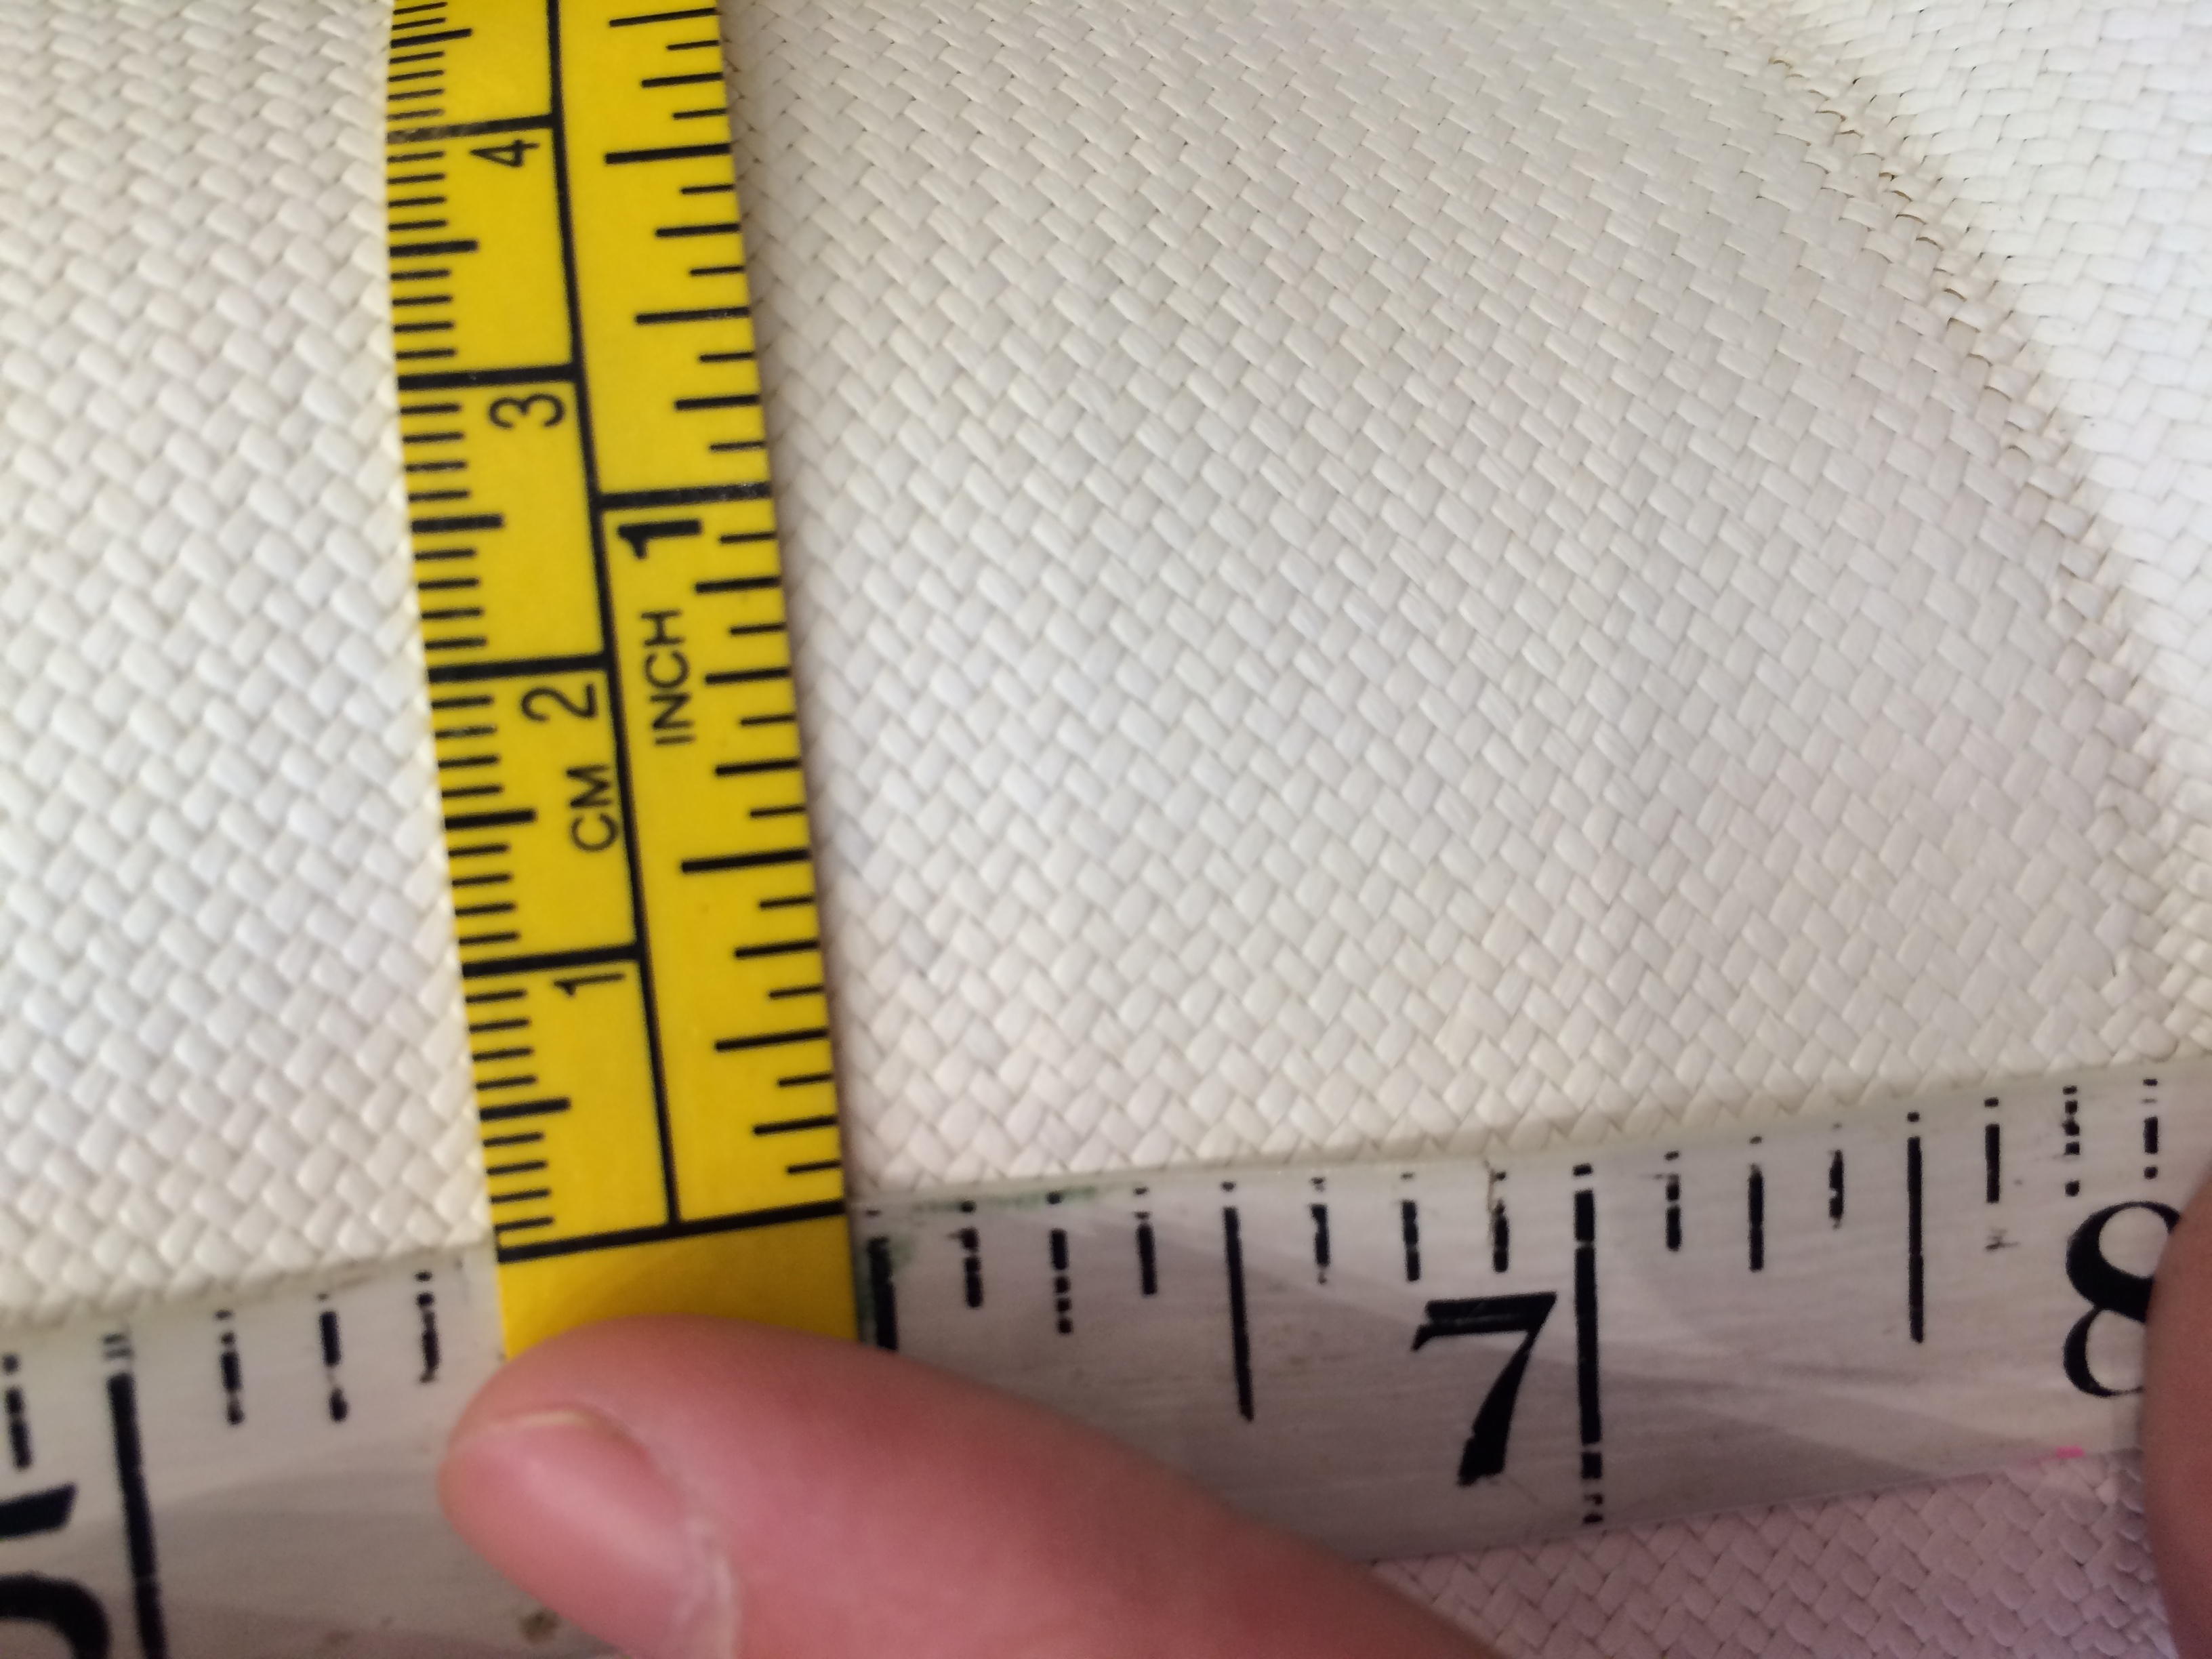 The City Milliner measuring per square inch for quality